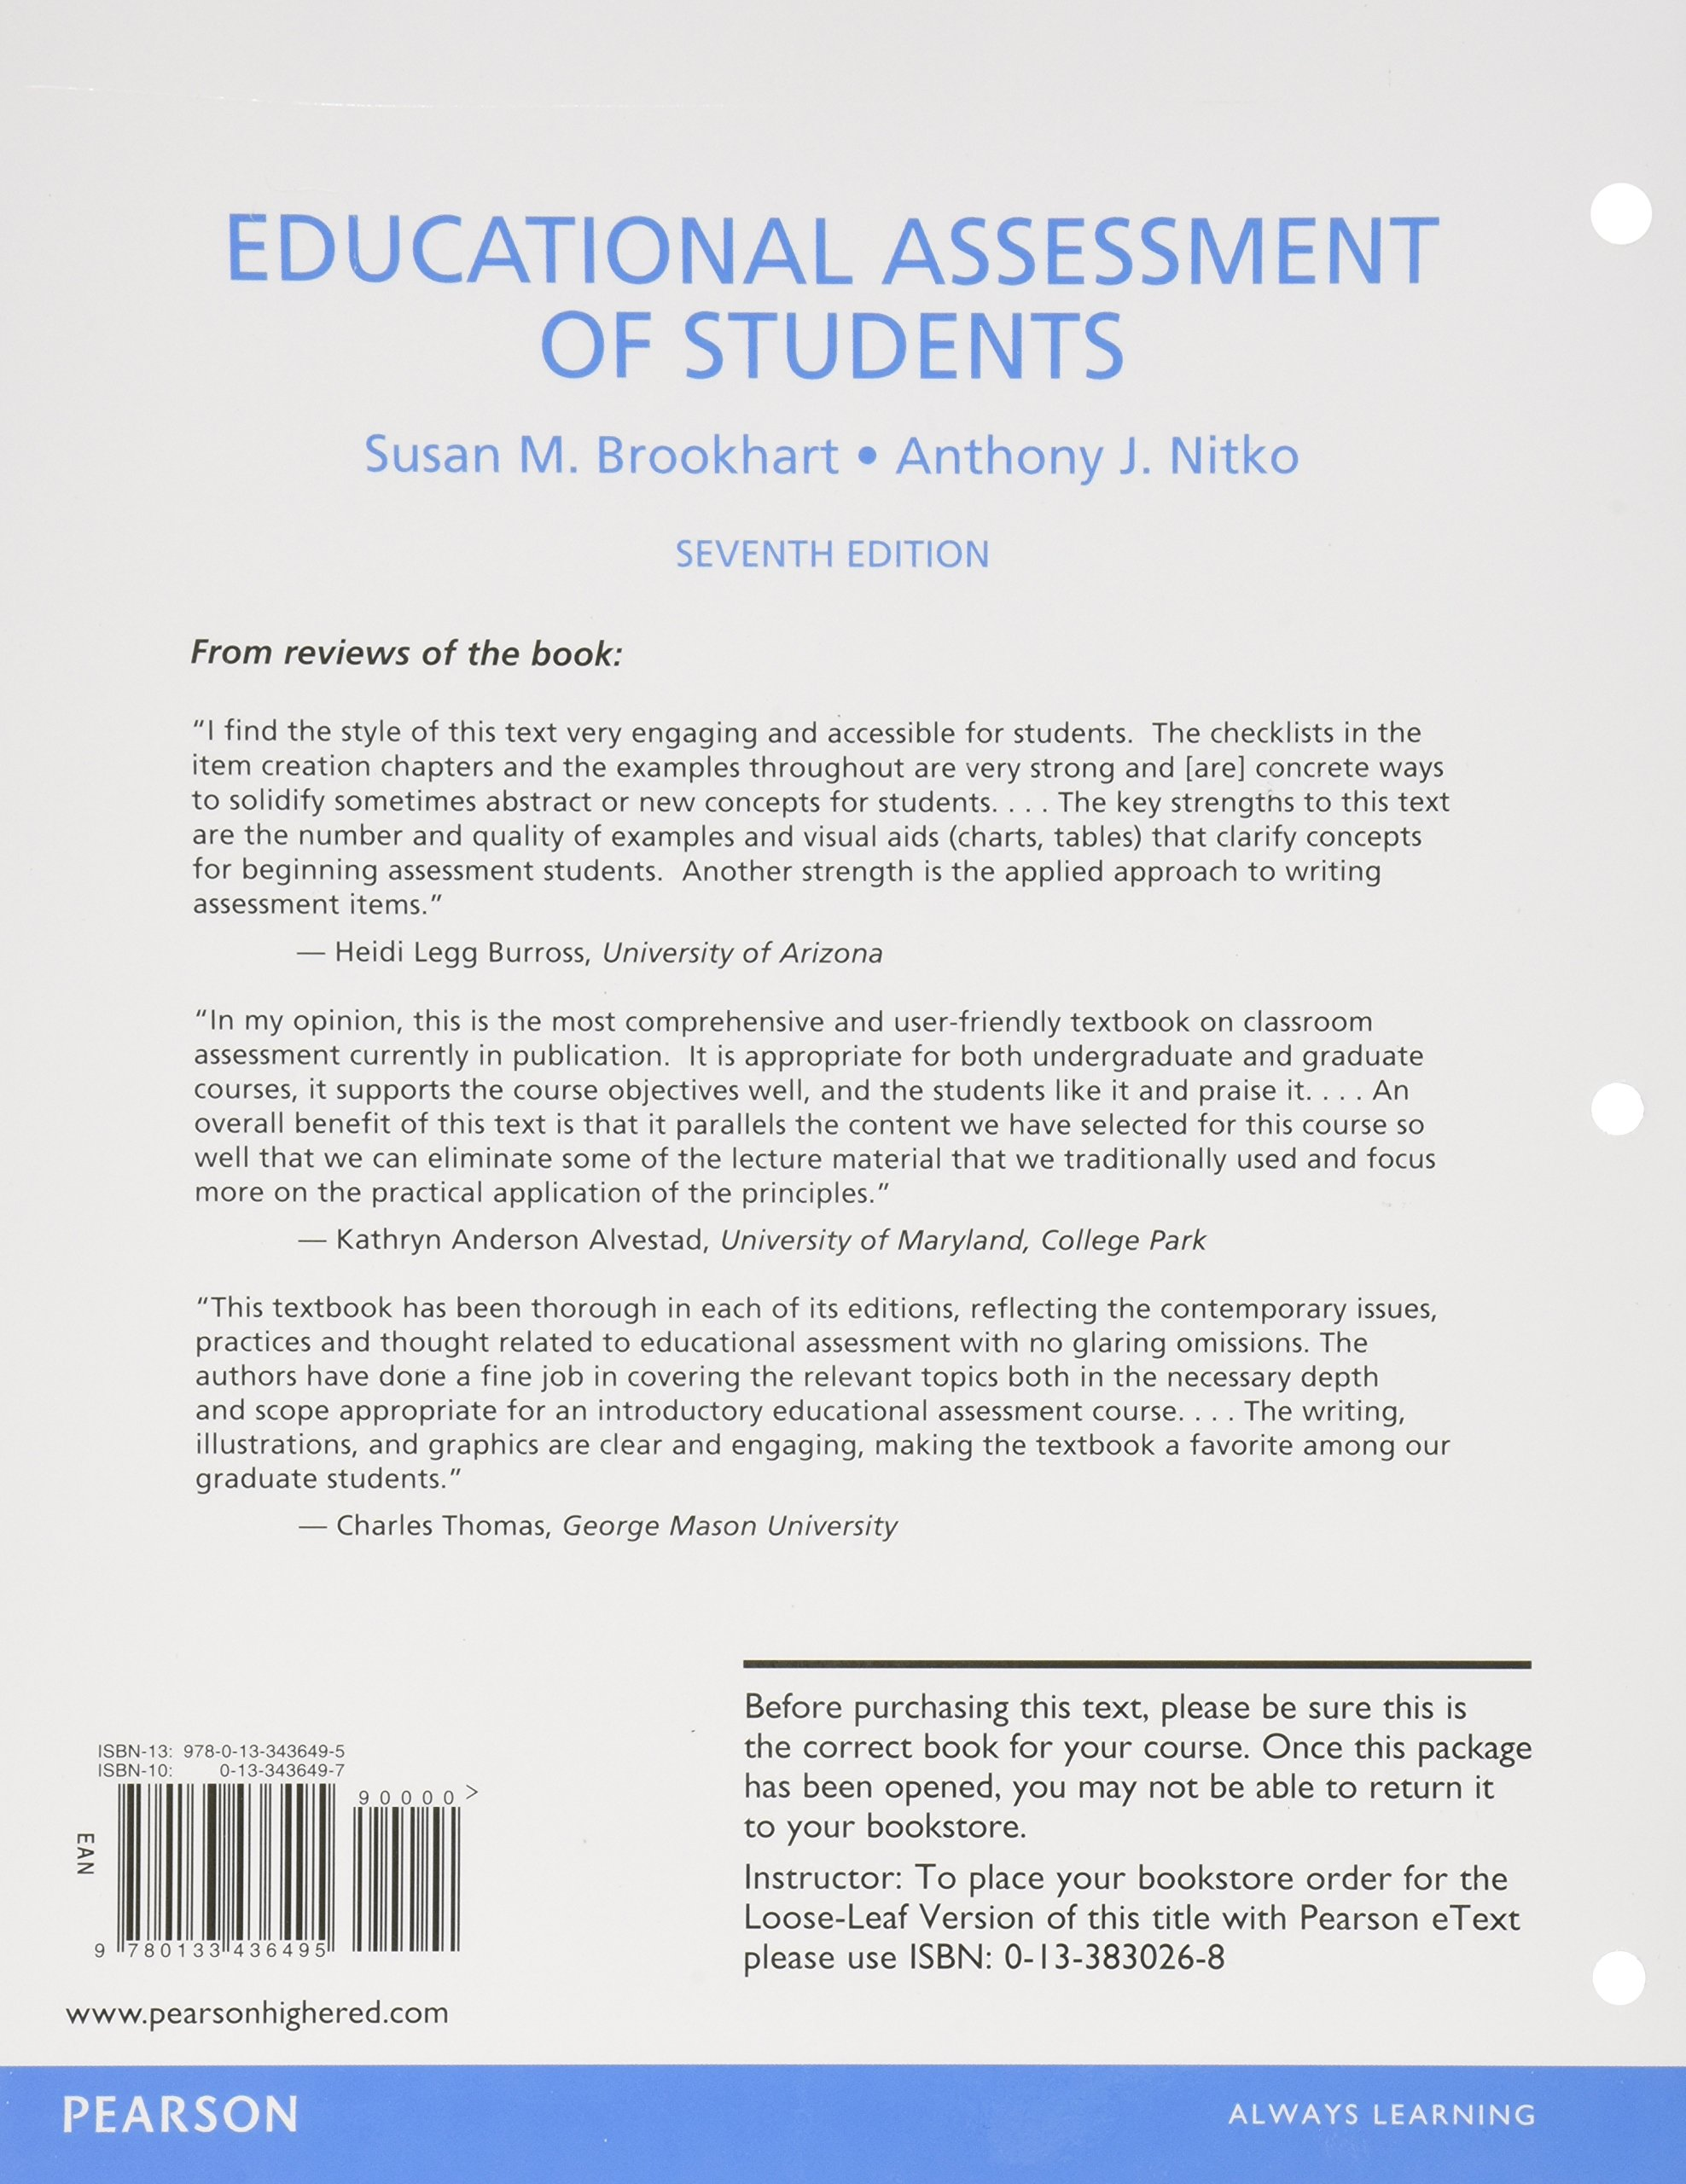 educational assessment of students pearson etext access card educational assessment of students pearson etext access card susan m brookhart anthony j nitko 9780133779844 amazon com books